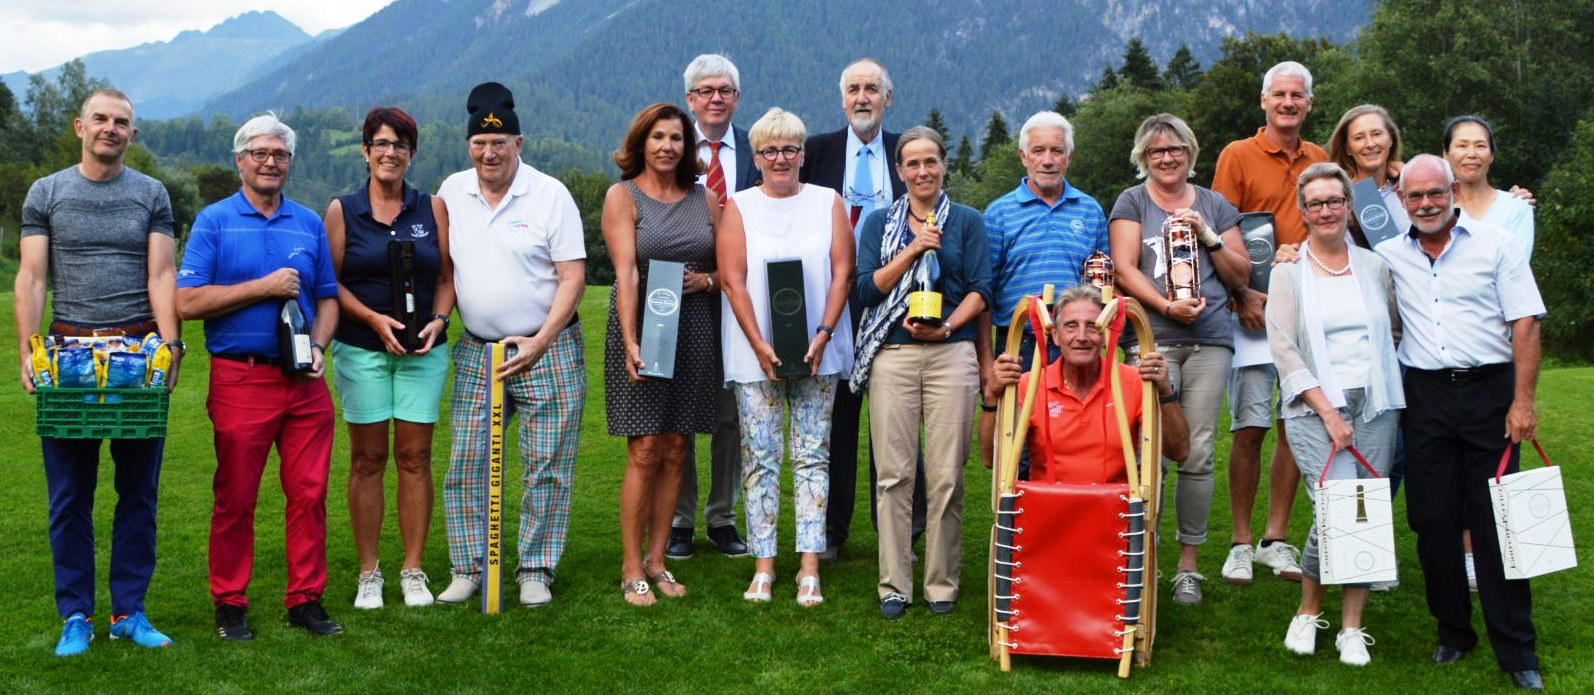 Albula Seniors Open - Sieger Teamwertung 2018